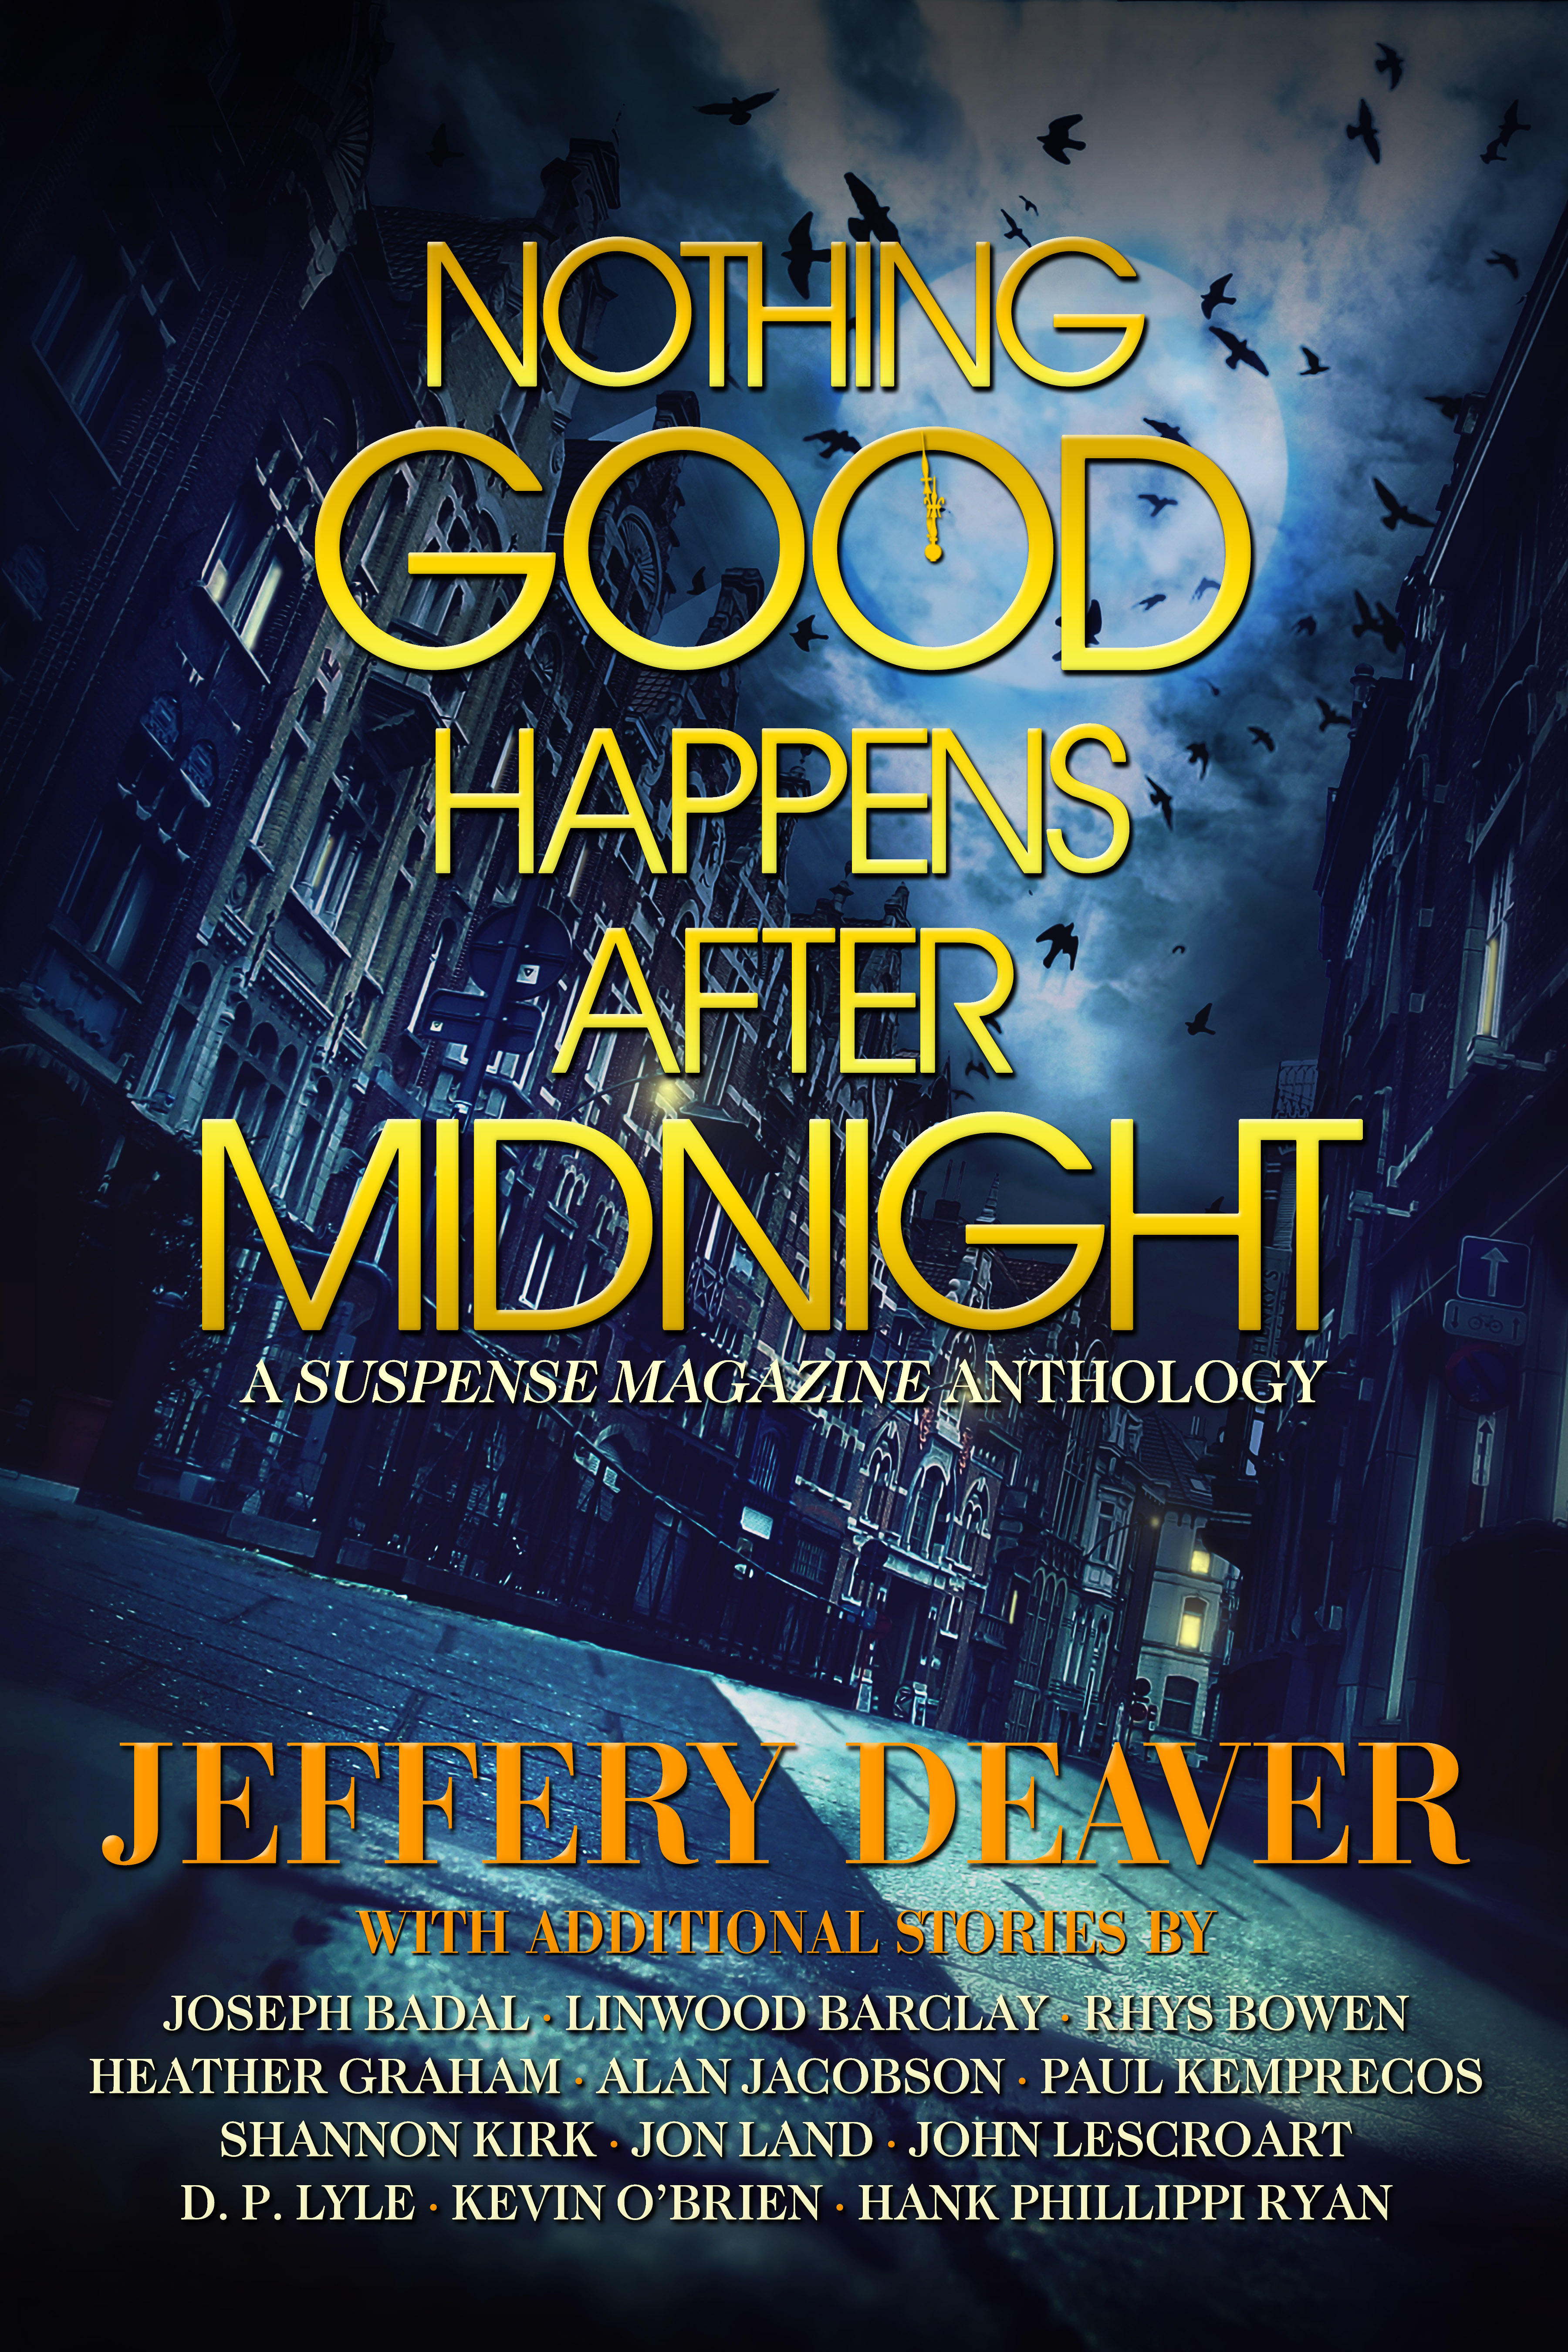 Nothing Good Happens After Midnight_Suspense Magazine Cover_Hi Res